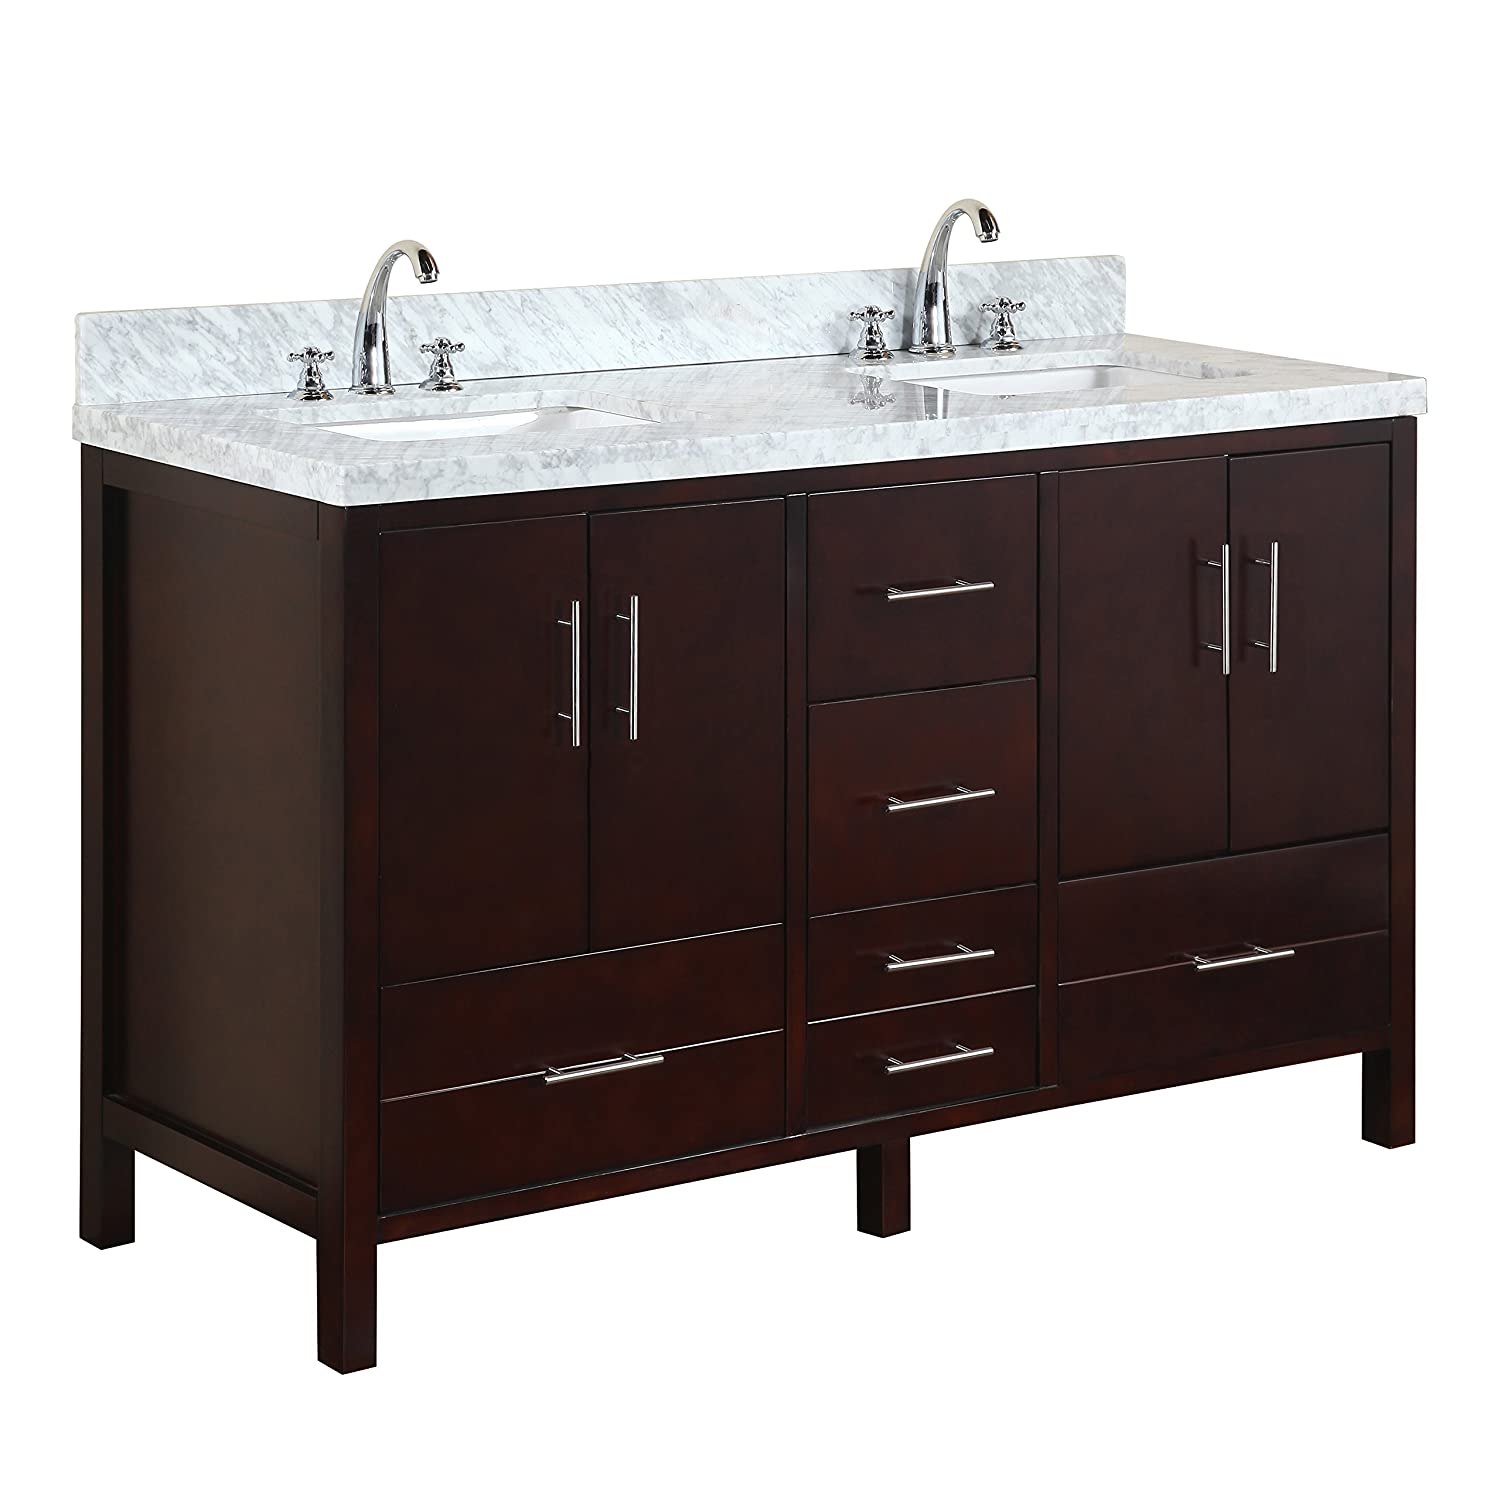 California 60-inch Double Bathroom Vanity Carrara Chocolate Includes Modern Chocolate Cabinet with Soft Close Drawers, Authentic Italian Carrara Marble Top, and Double Rectangular Ceramic Sinks